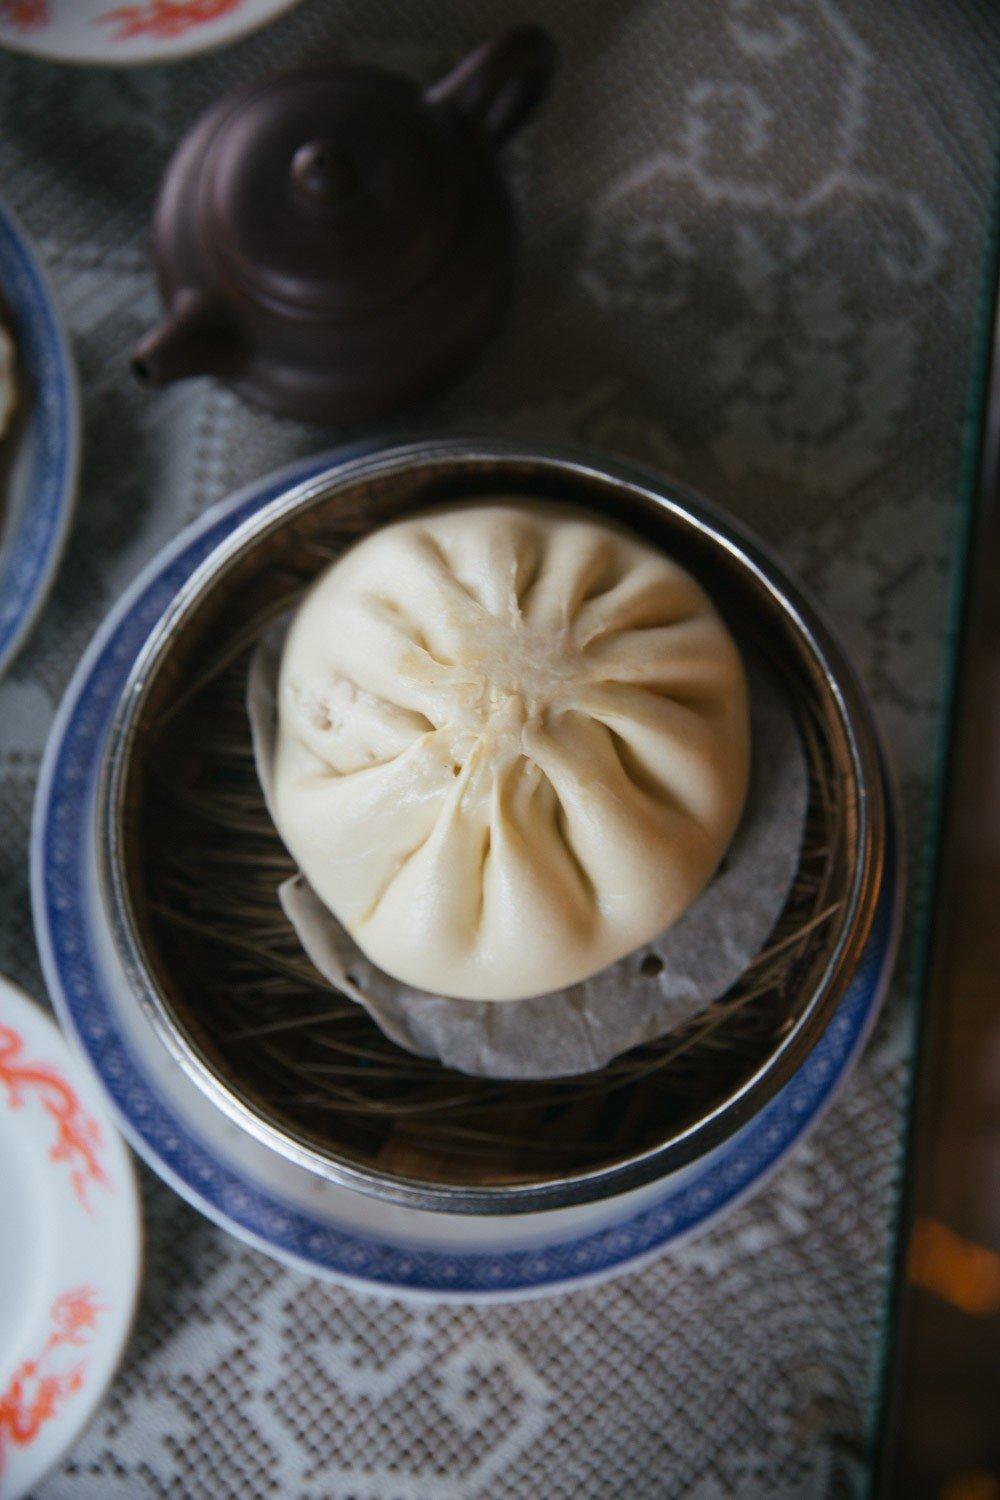 Giant steamed bun